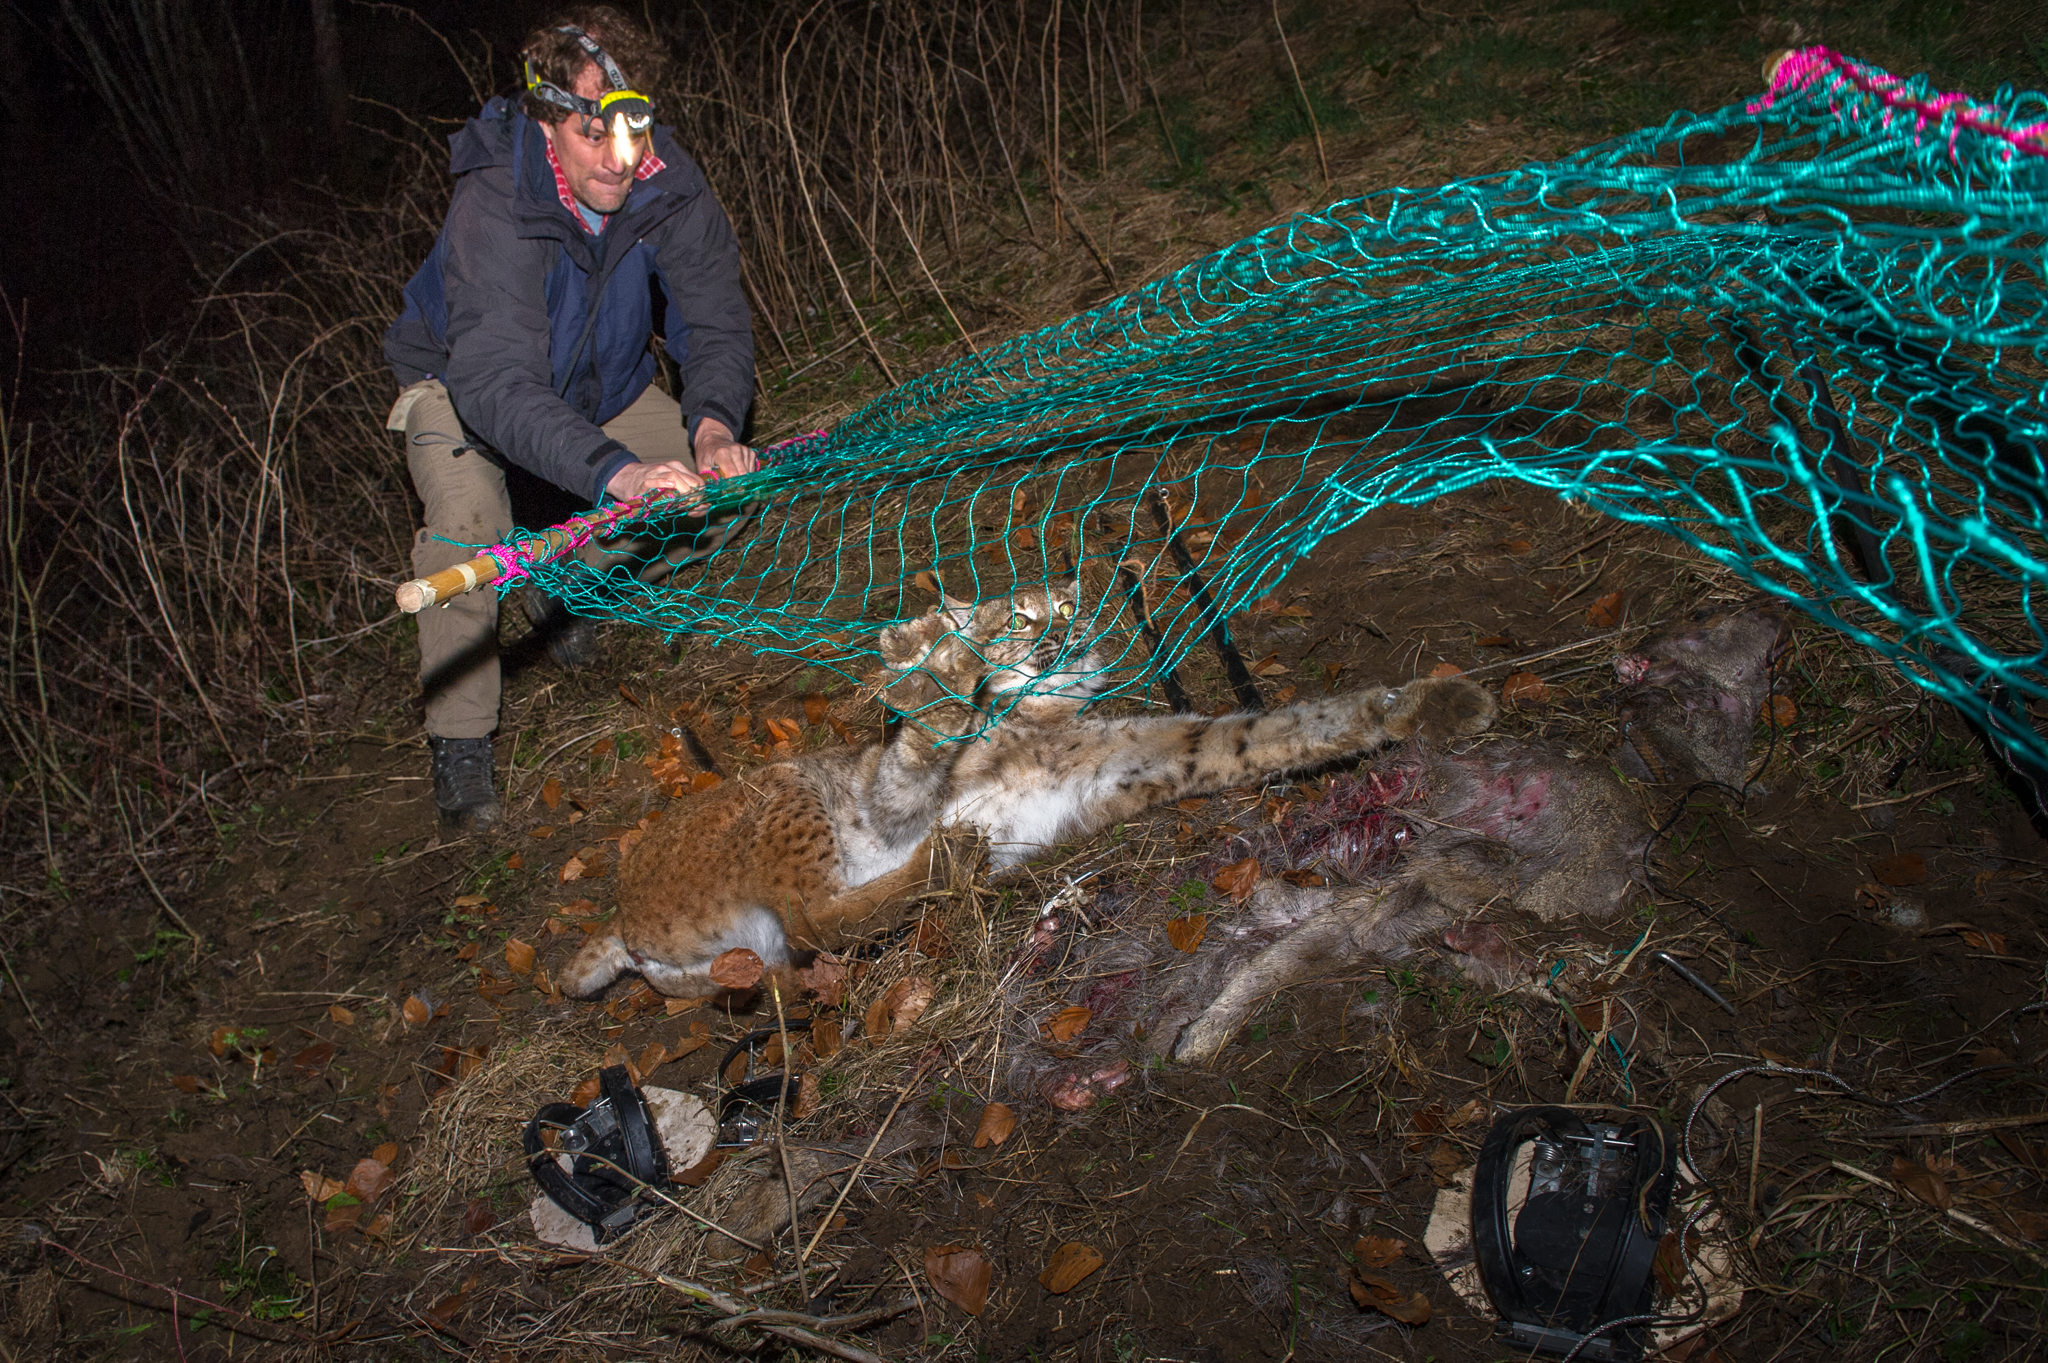 KORA biologist Fridolin Zimmerman subdues an adult female Eurasian lynx in preparation for the animal's relocation to Kalkalpen National Park, Austria.